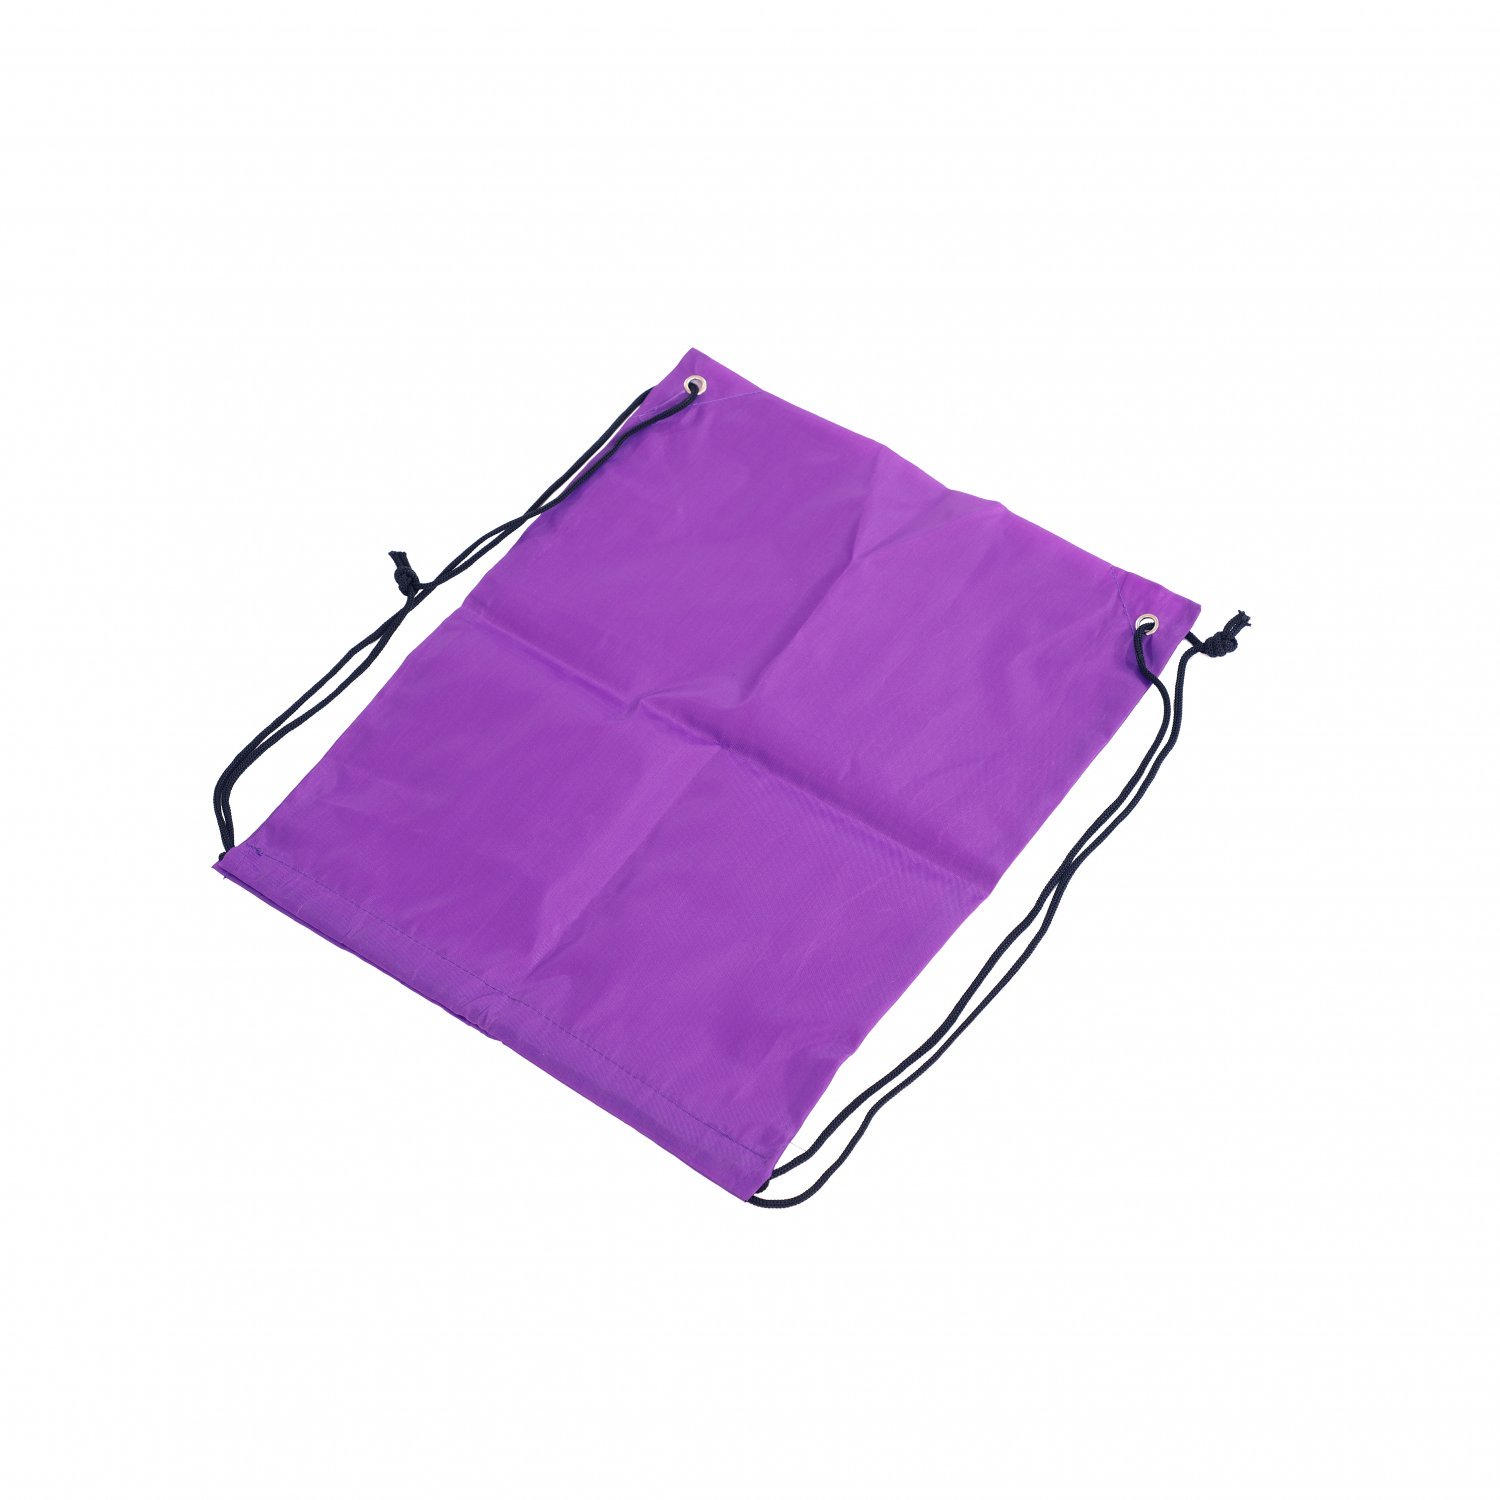 Oxford Cloth Sports PE Purple Laundry Drawstring Bag